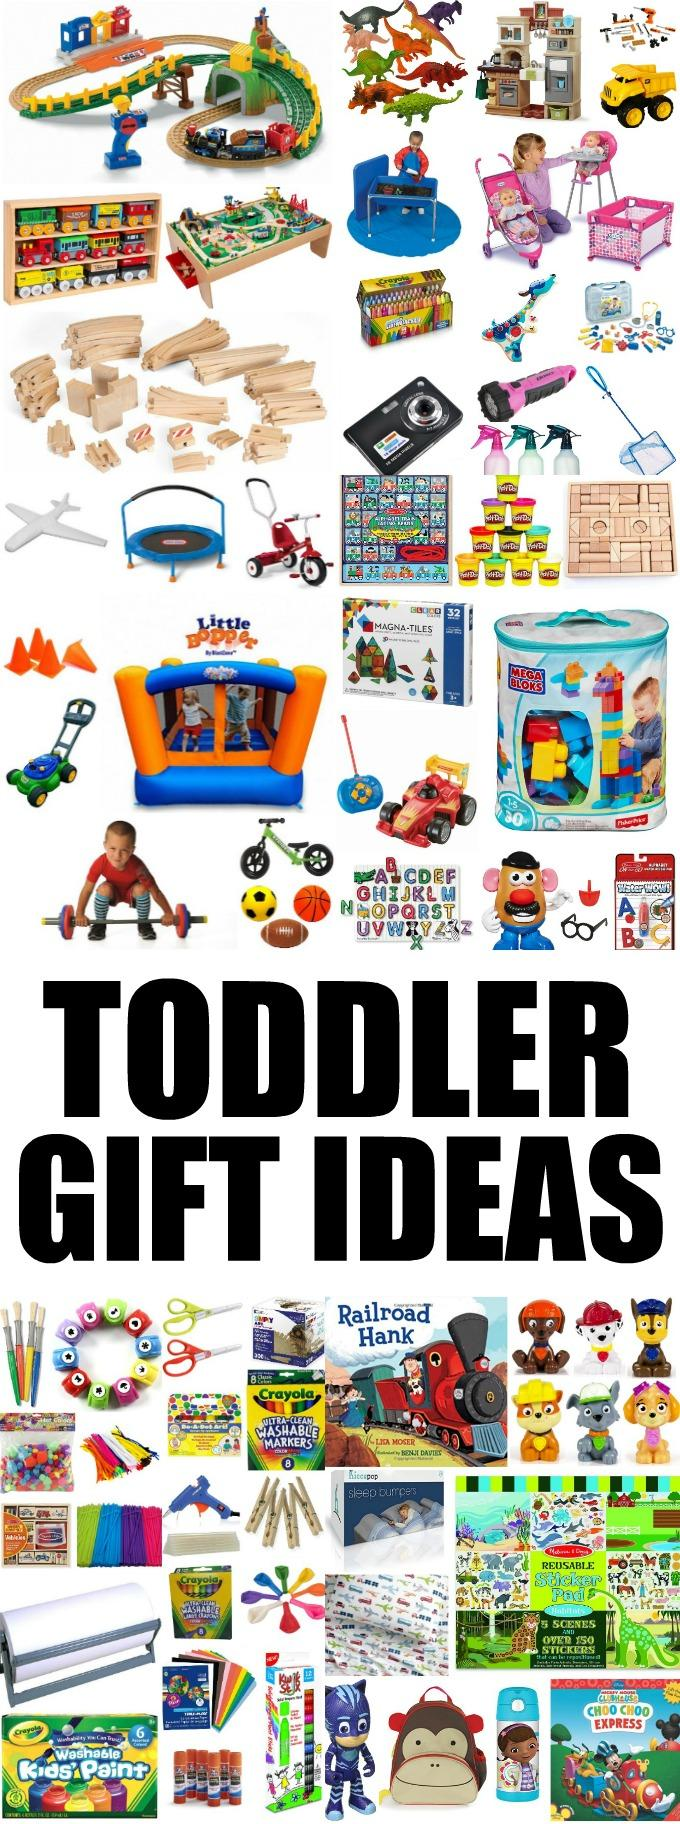 These Toddler Gift Ideas make perfect birthday presents, Christmas gifts or everyday surprises. Grab one for your son or daughter or one of their friends!